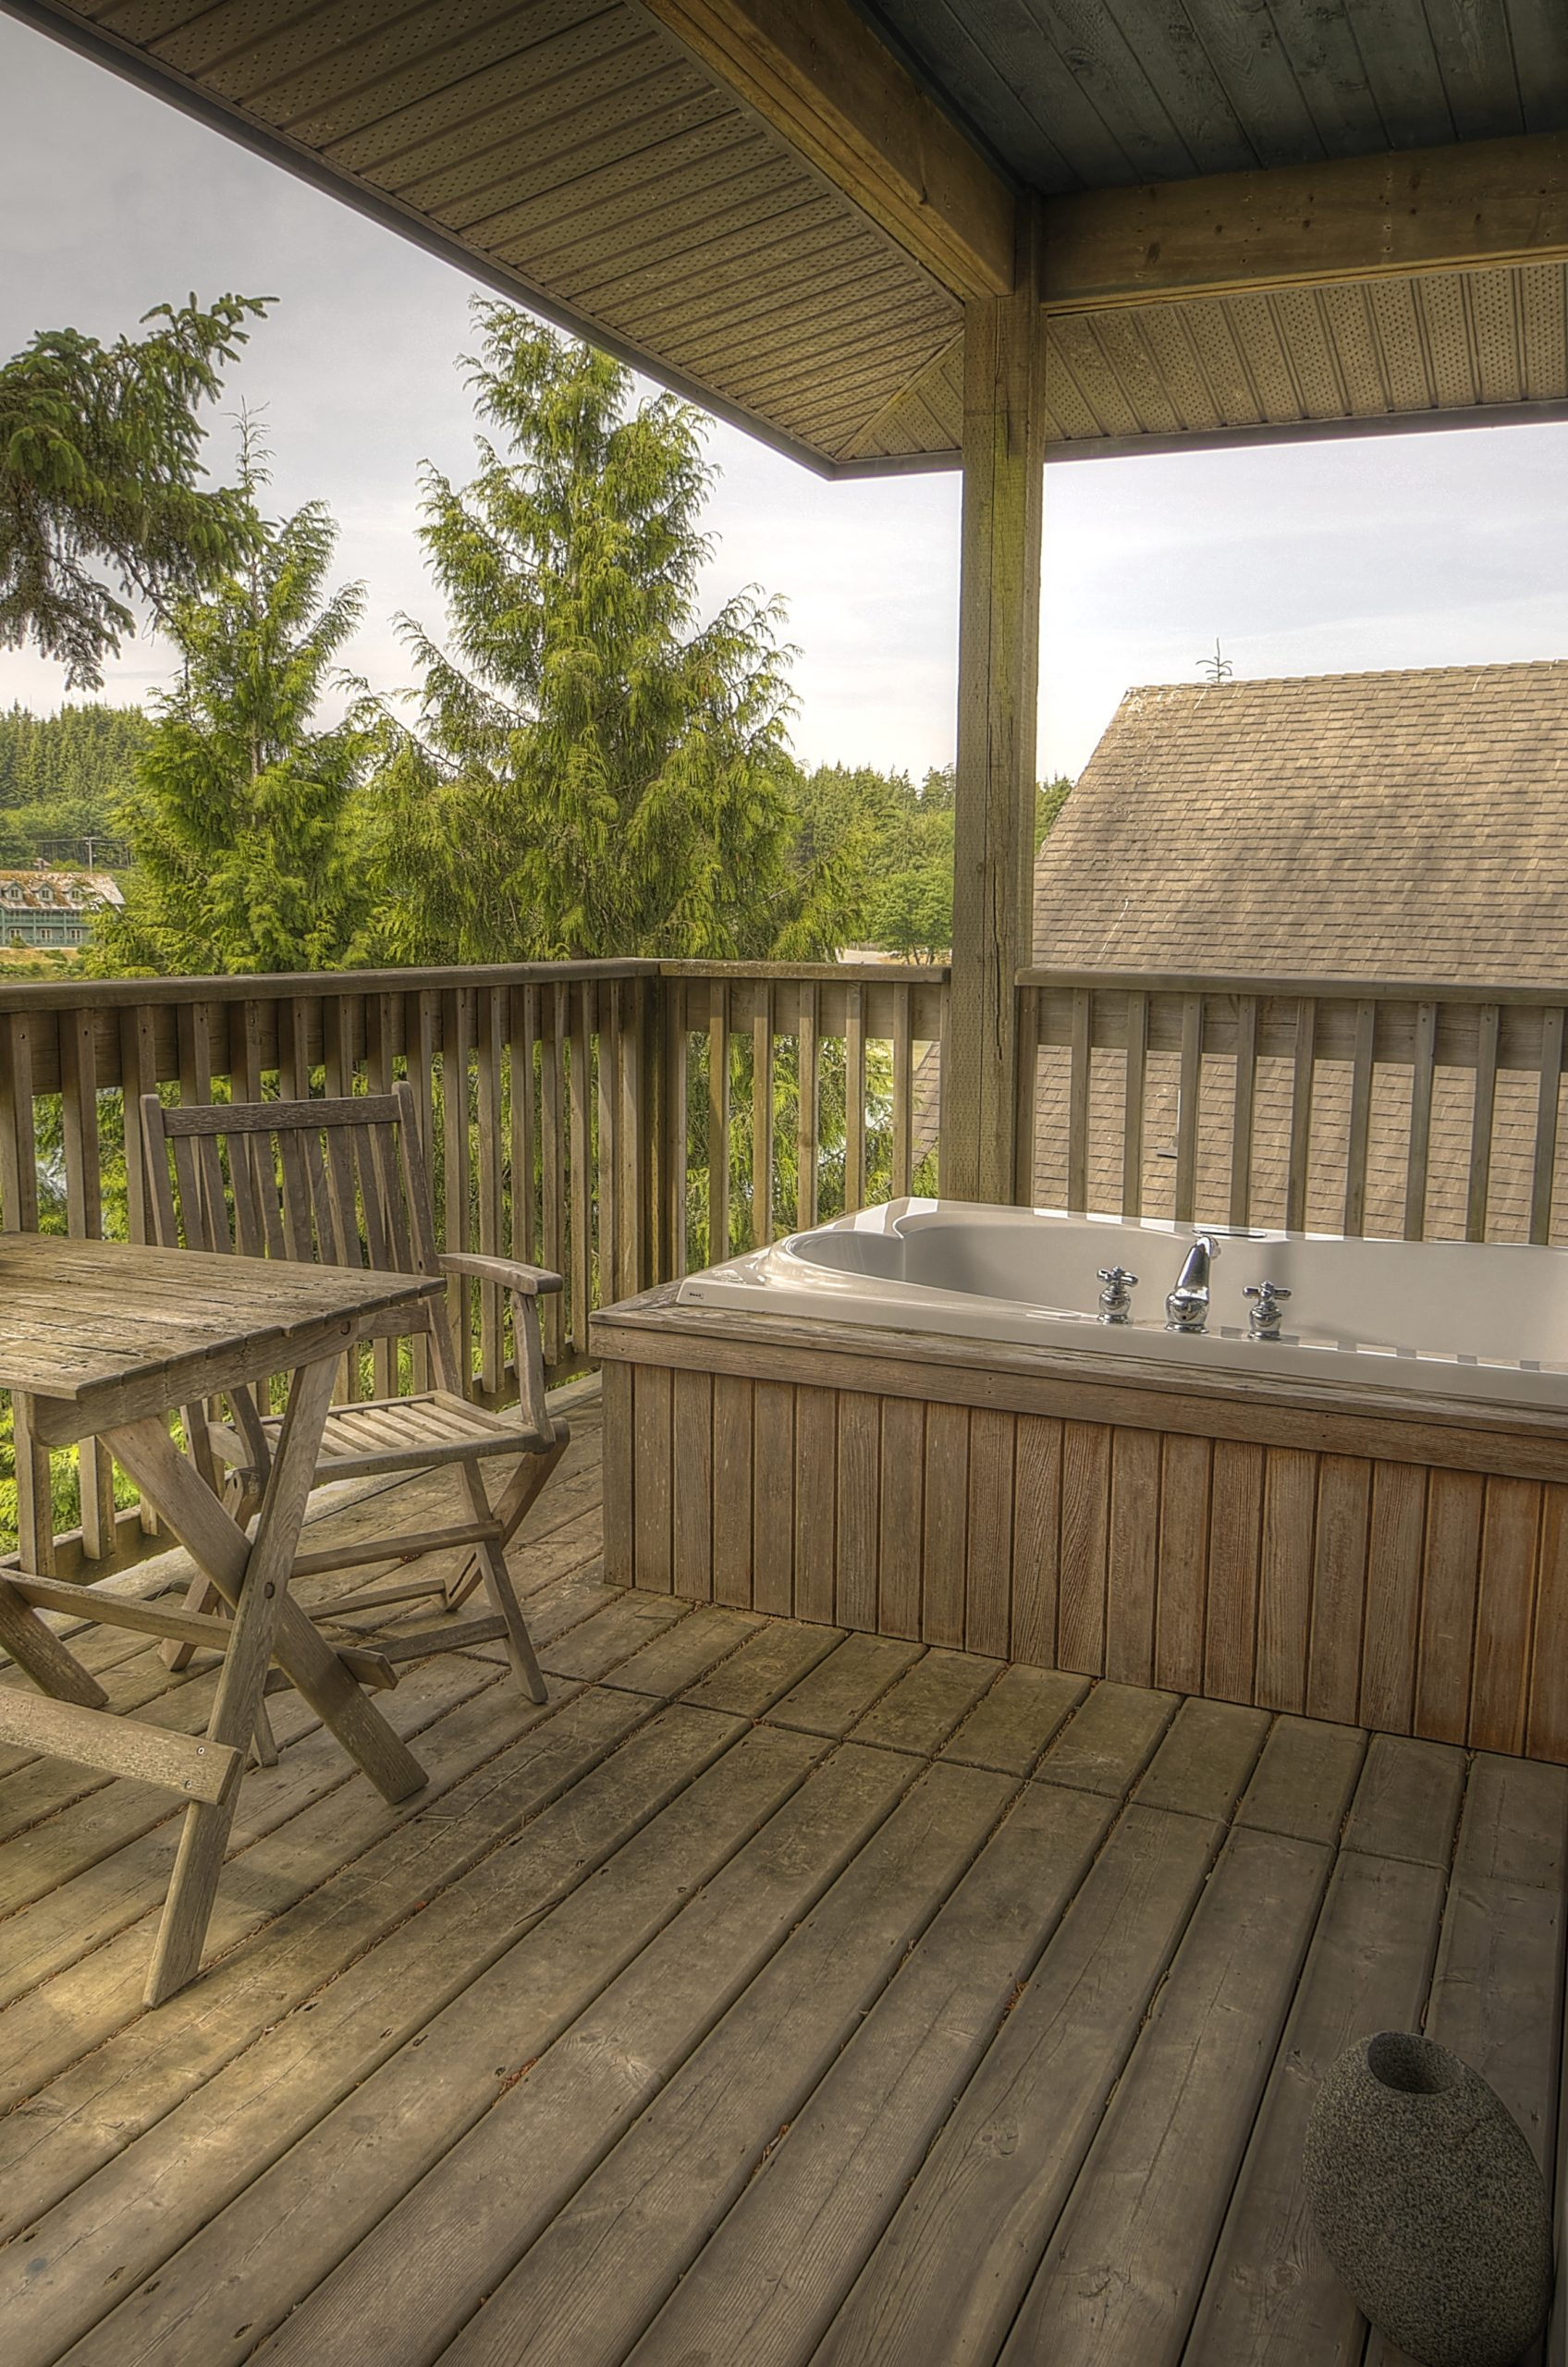 Image of jetted outdoor tub of deluxe suite at Water's Edge